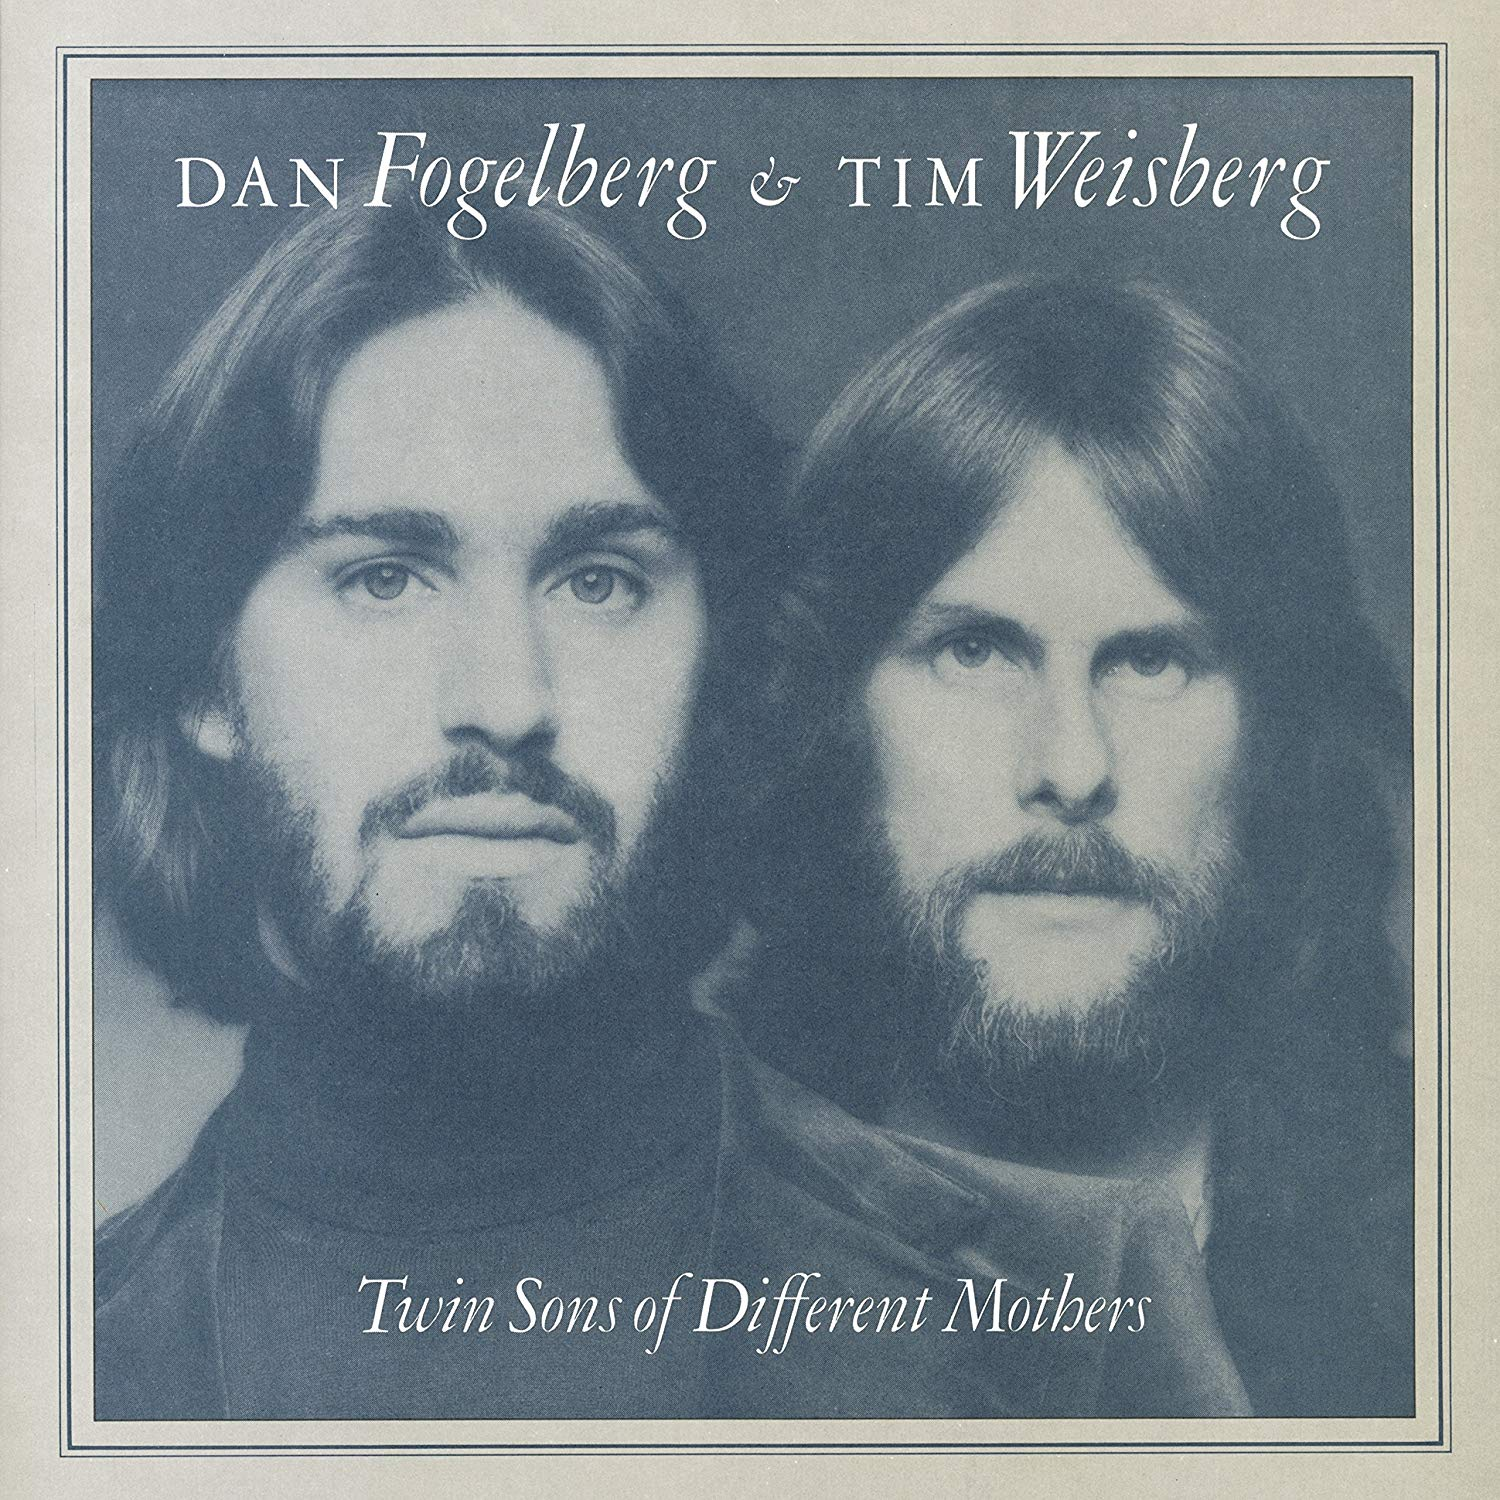 Dan Fogelberg & Tim Weisberg - Twin Sons Of Different Mothers Clear LP